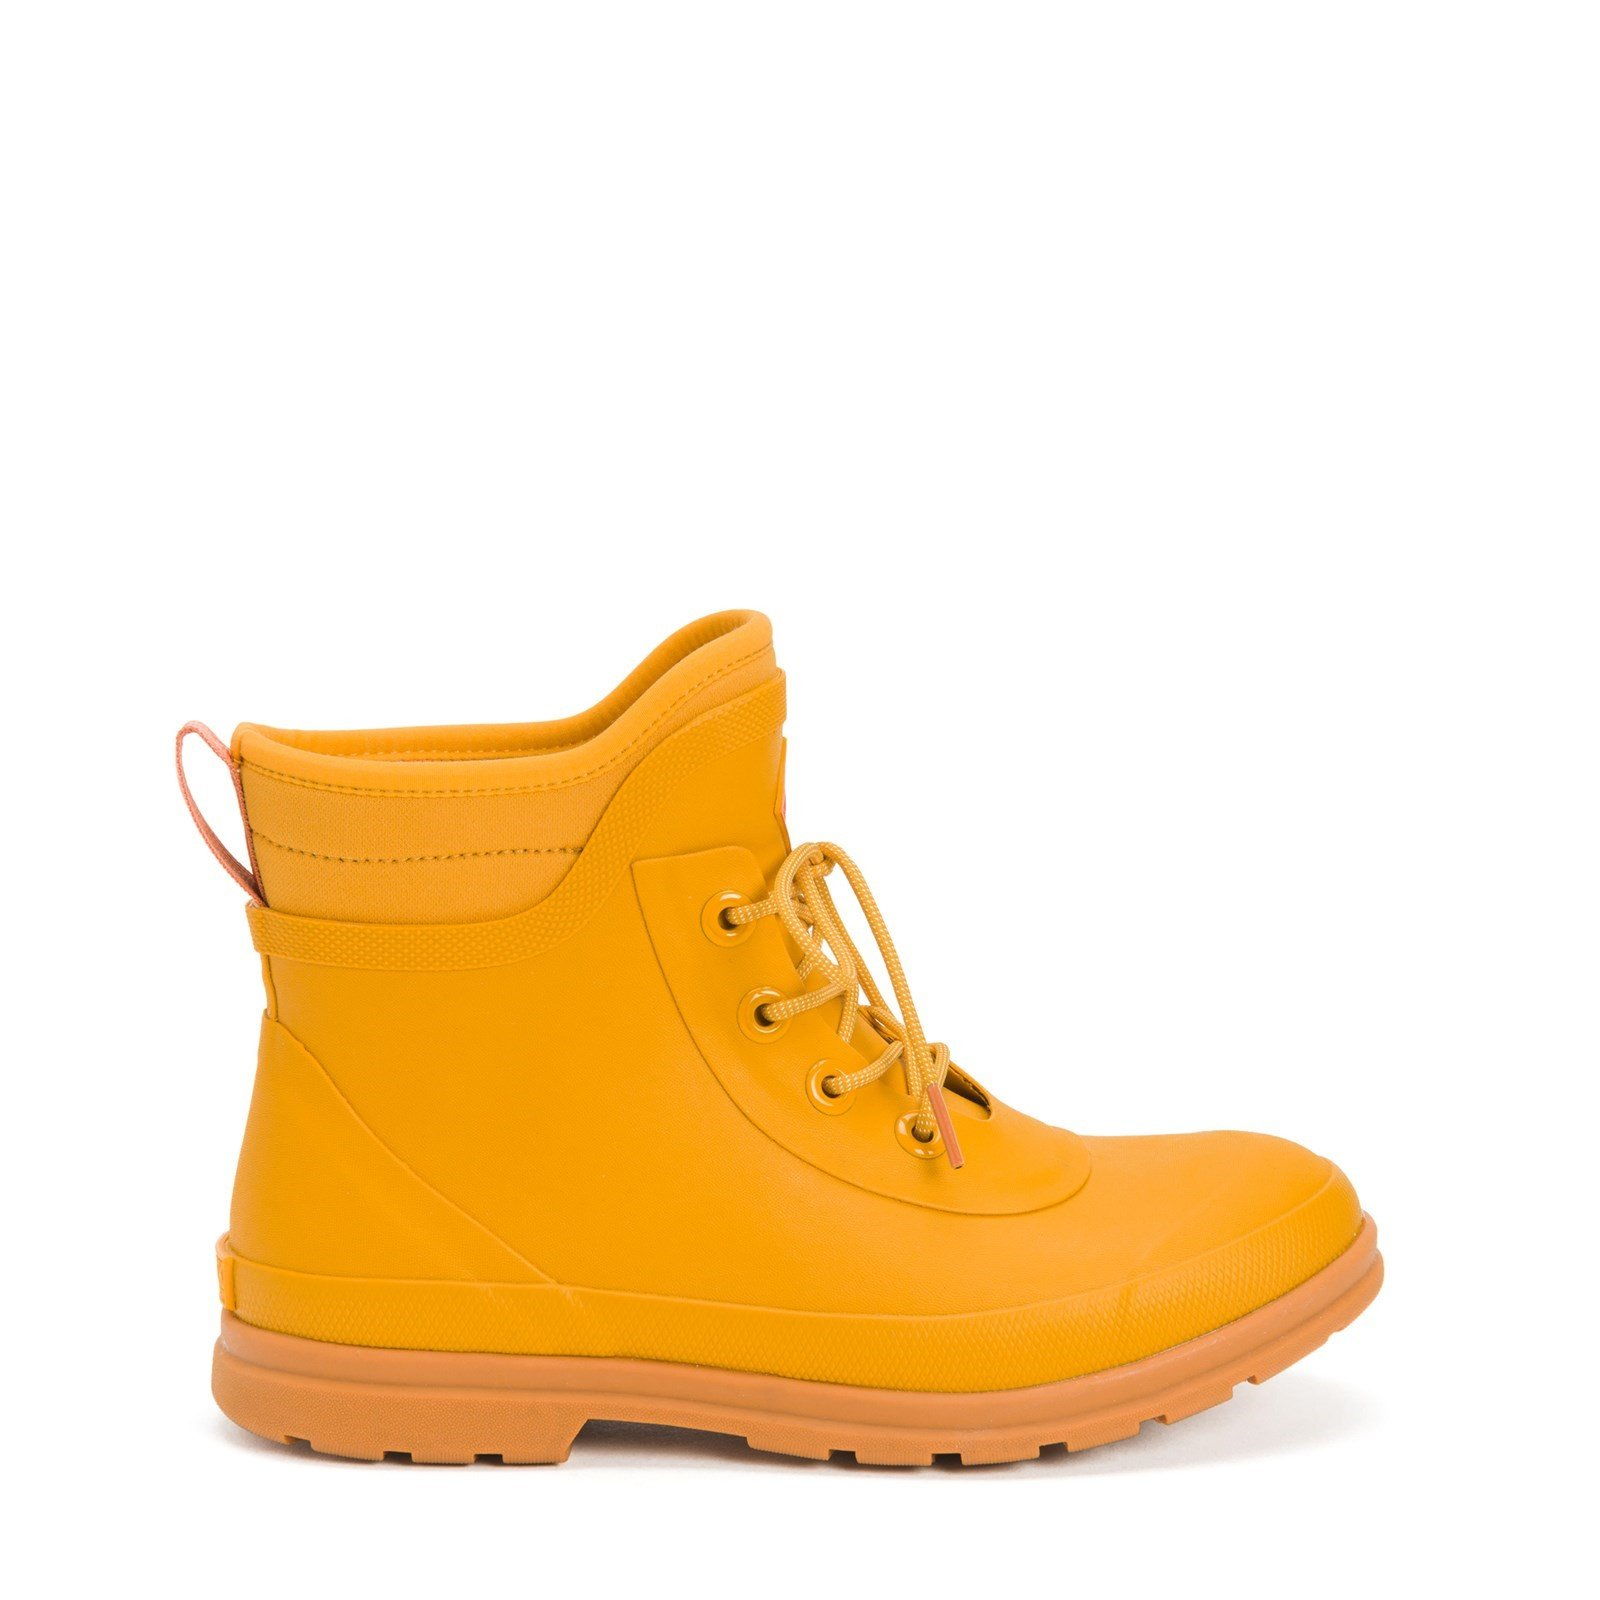 Muck Boots Women's Originals Lace Up Ankle Boot Various Colours 30079 - Sunflower 5